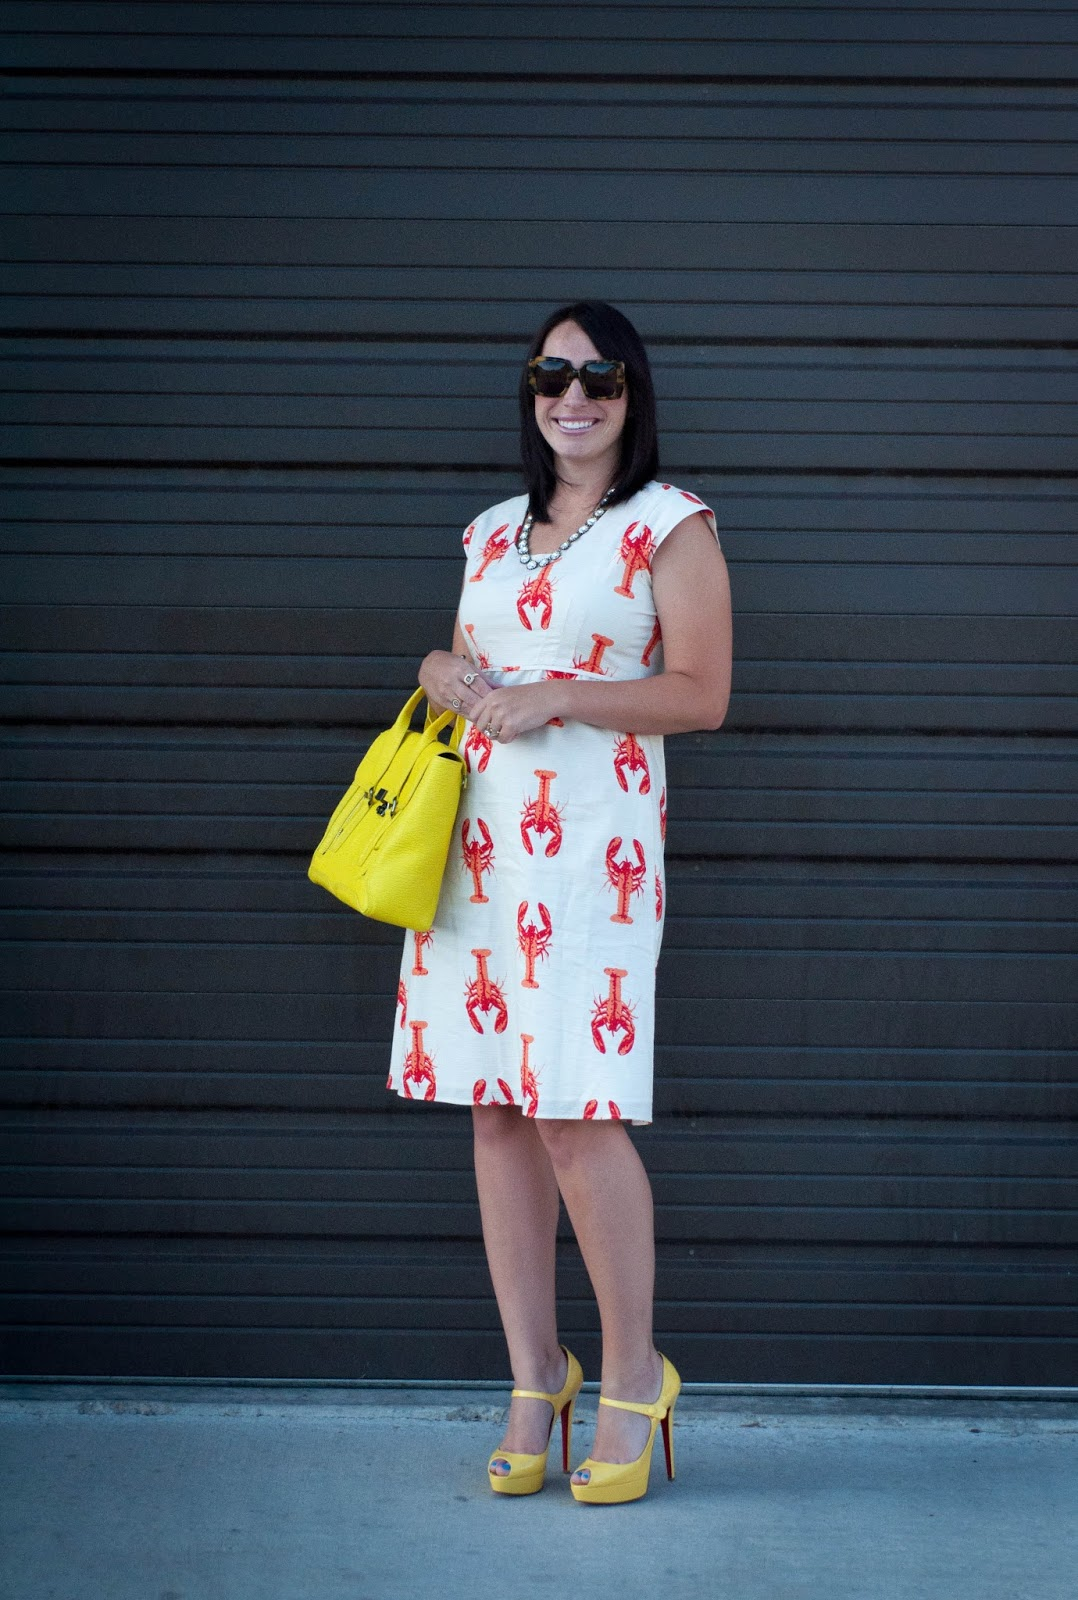 ootd, karen walker sunglasses, karen walker betsy, 3.1 phillip lim pashli satchel, lobster dress, red soles